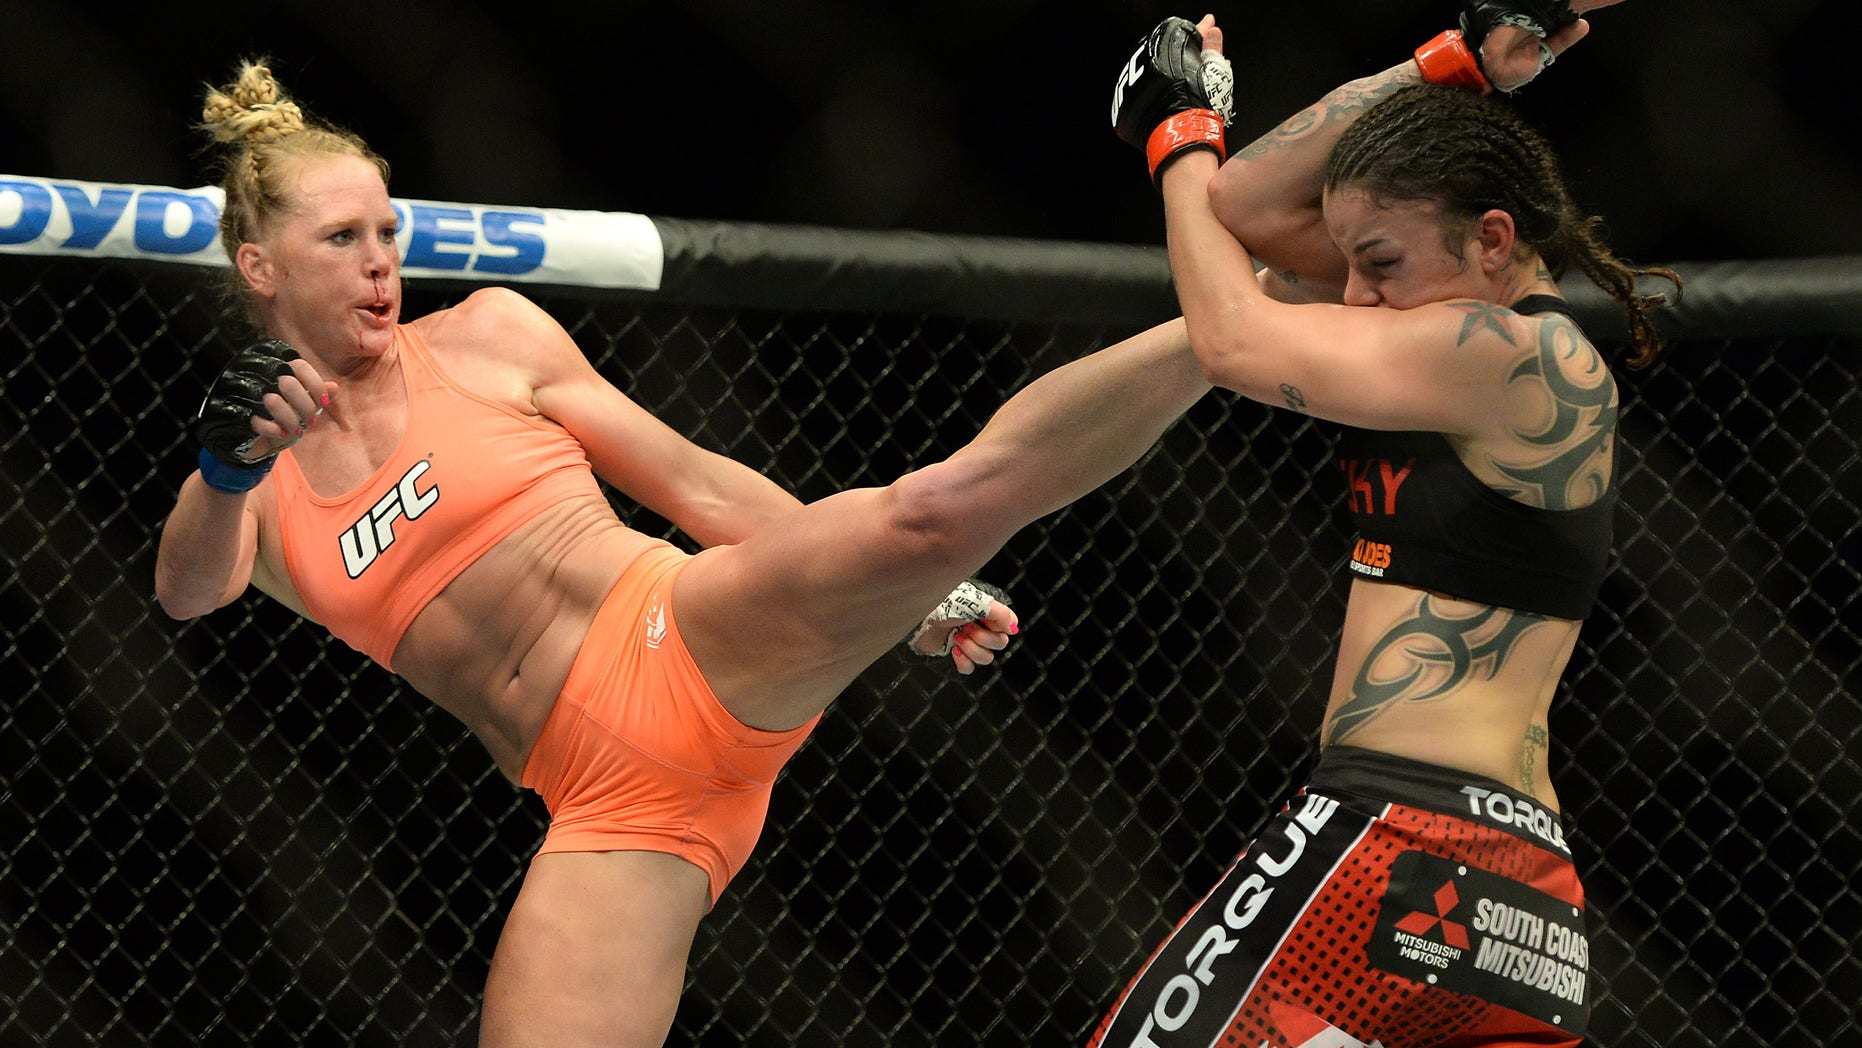 Feb 28, 2015; Los Angeles, CA, USA; Raquel Pennington (red gloves) and Holly Holm (blue gloves) during their women's bantamweight bout at UFC 184 at Staples Center. Mandatory Credit: Jayne Kamin-Oncea-USA TODAY Sports - RTR4RL8T